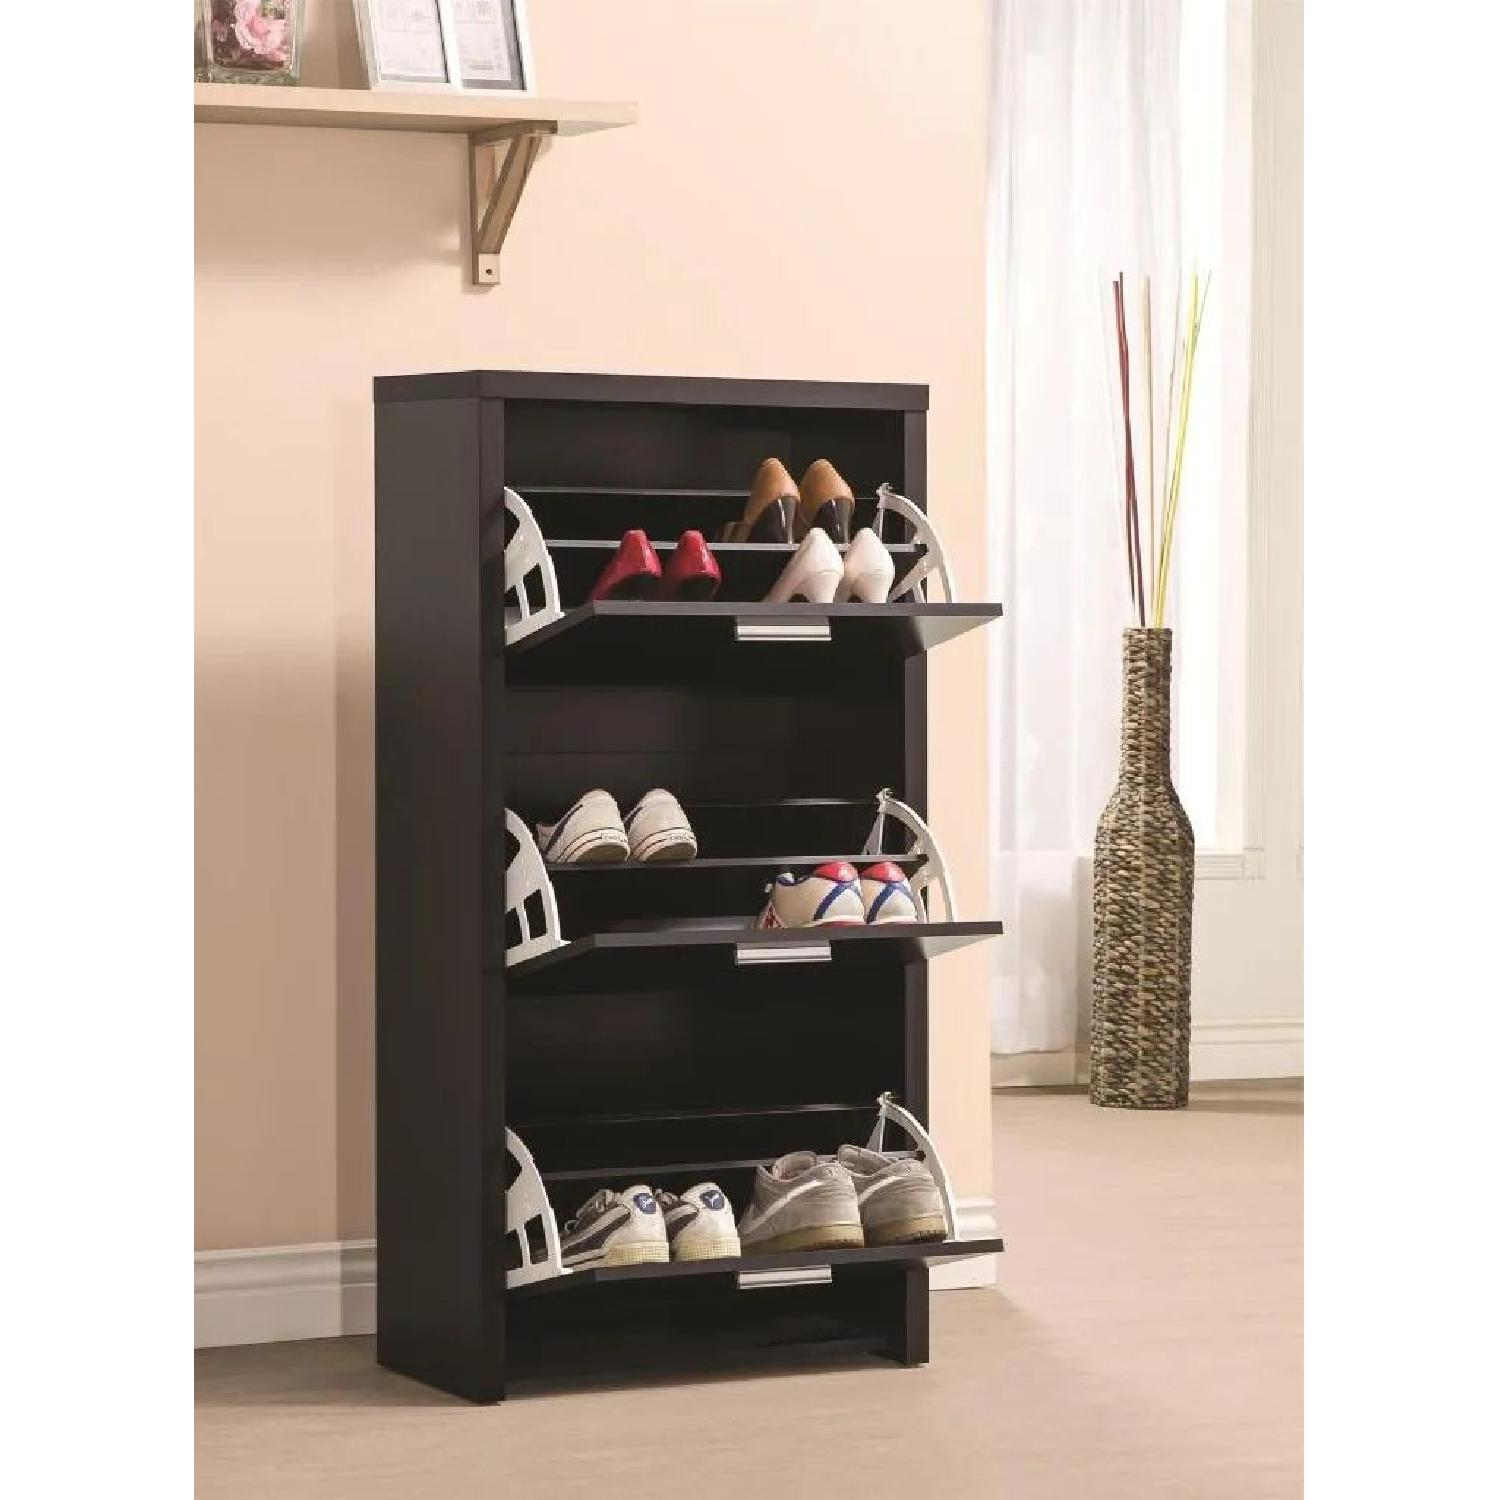 3-Compartment Shoe Storage Cabinet in Black Finish - image-2